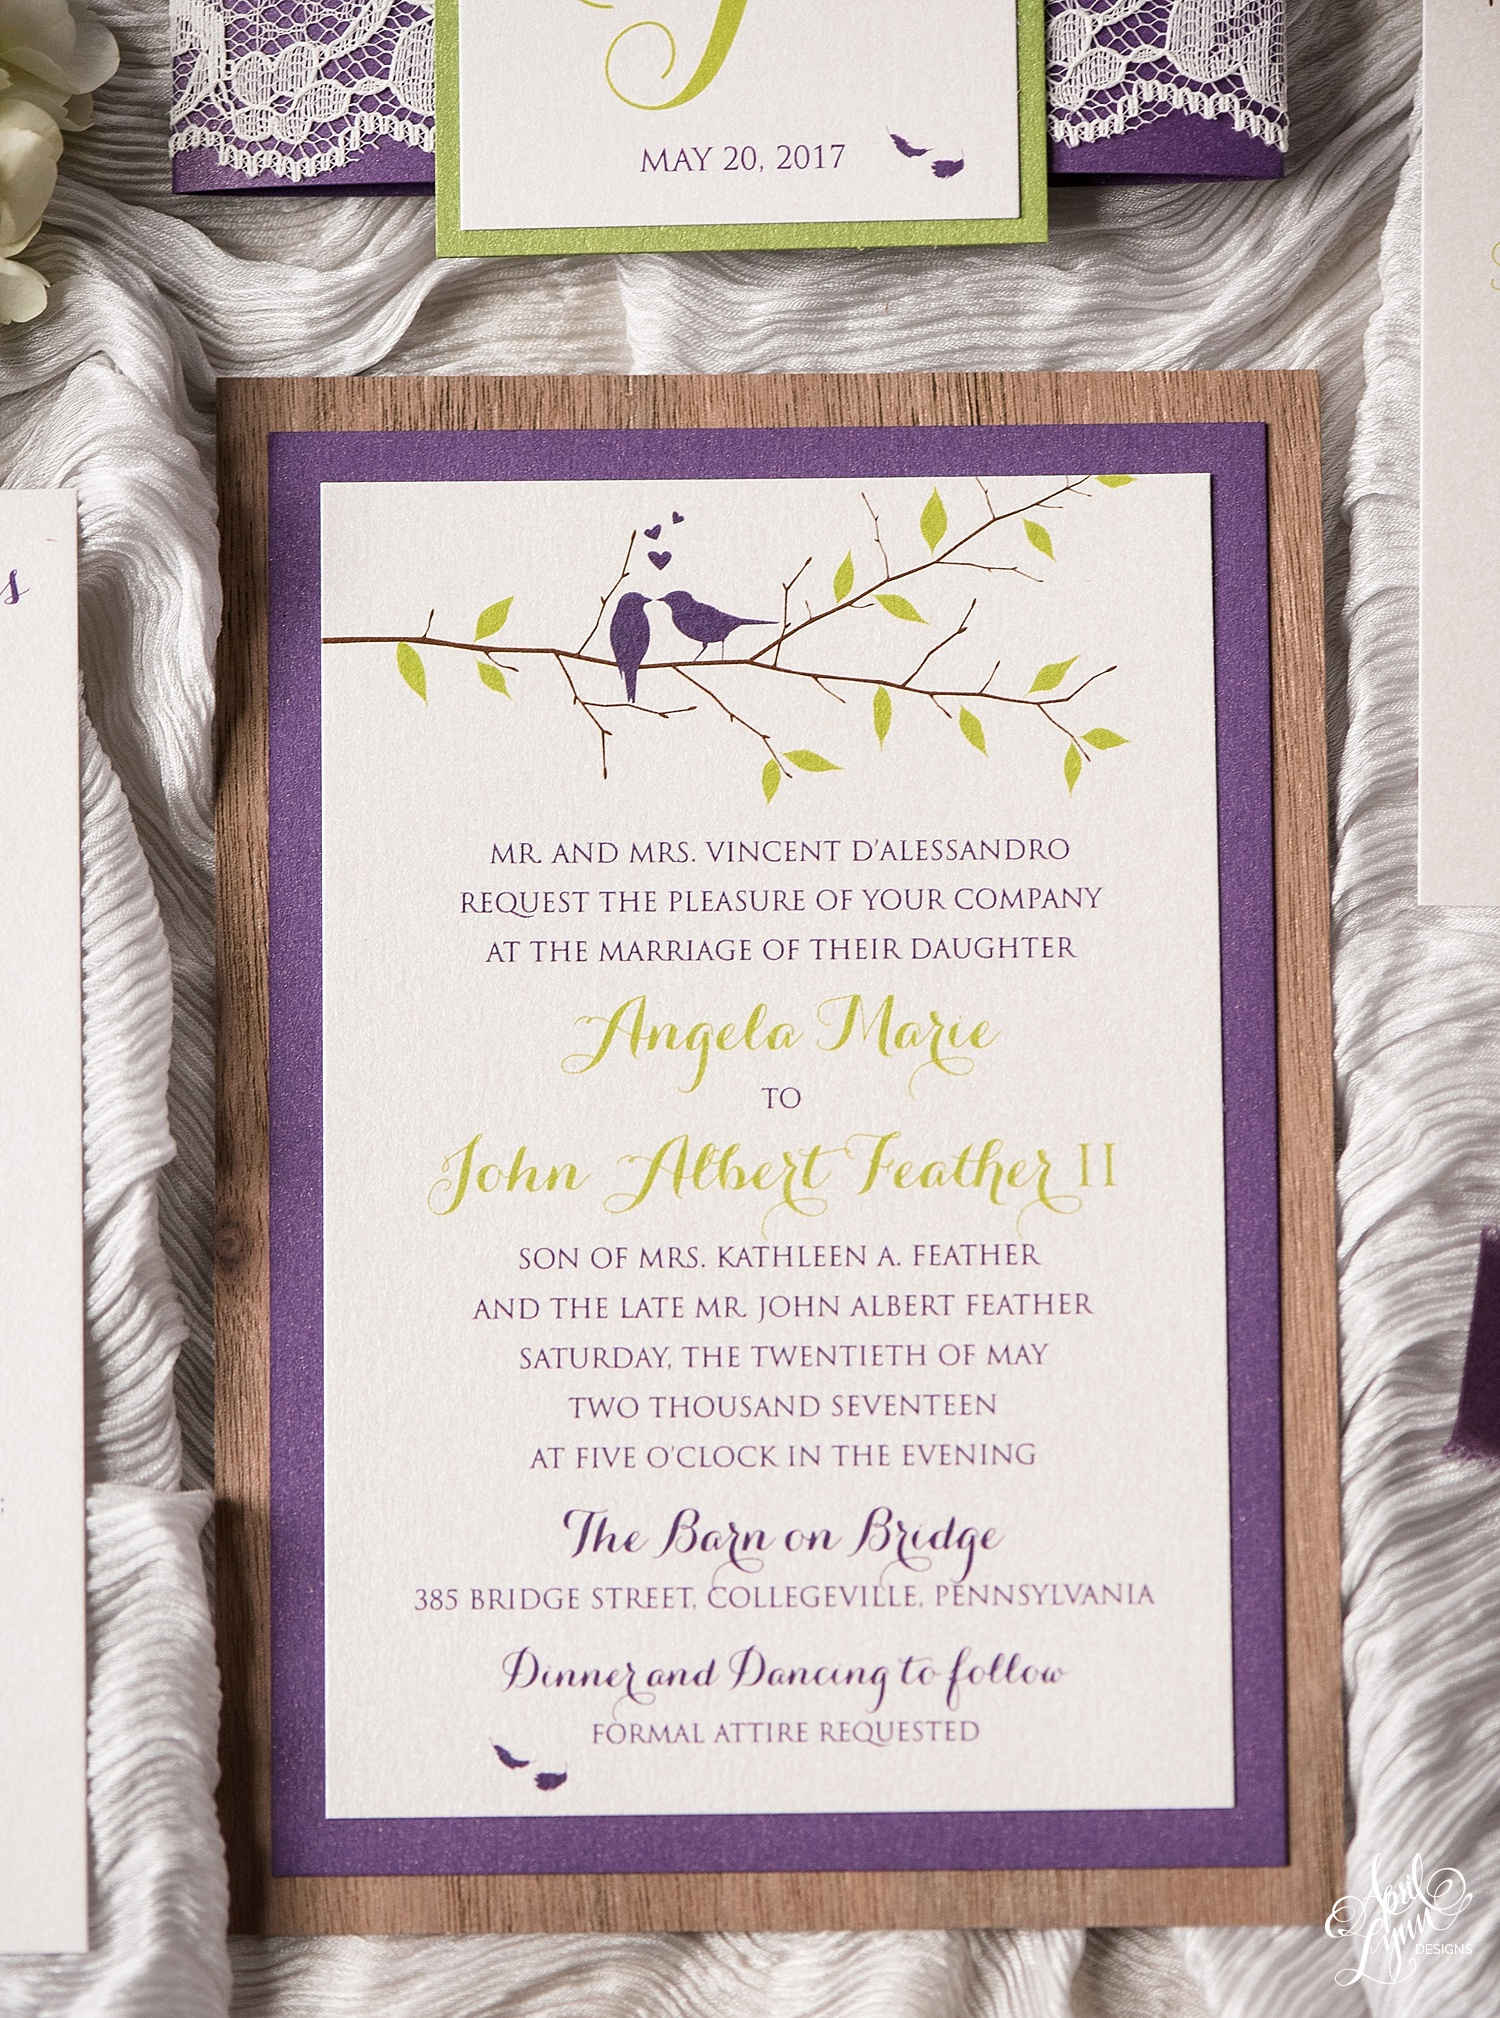 Rustic Love Birds Wedding Invitation Suite | www.aprillynndesigns.com